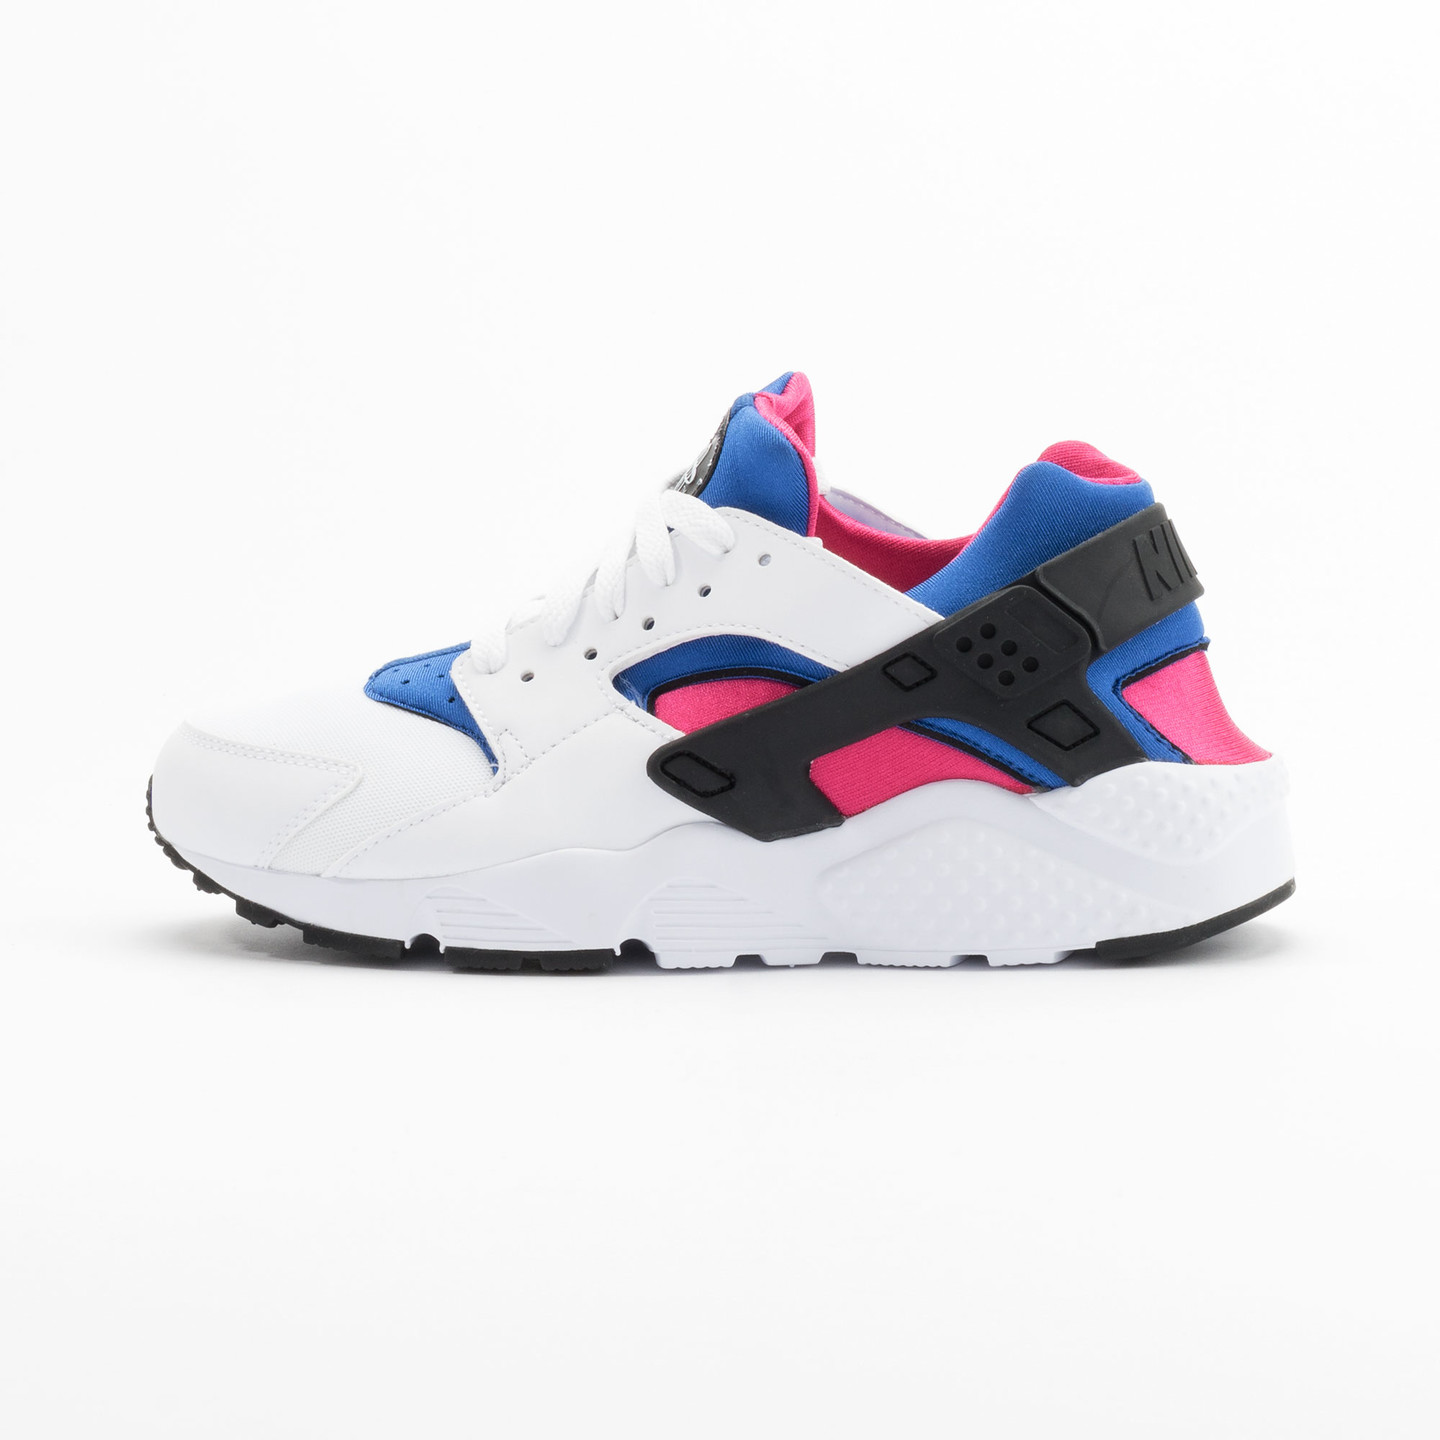 Nike Huarache Run GS White / Black / Game-Royal / Vivid-Pink 654275-106-37.5